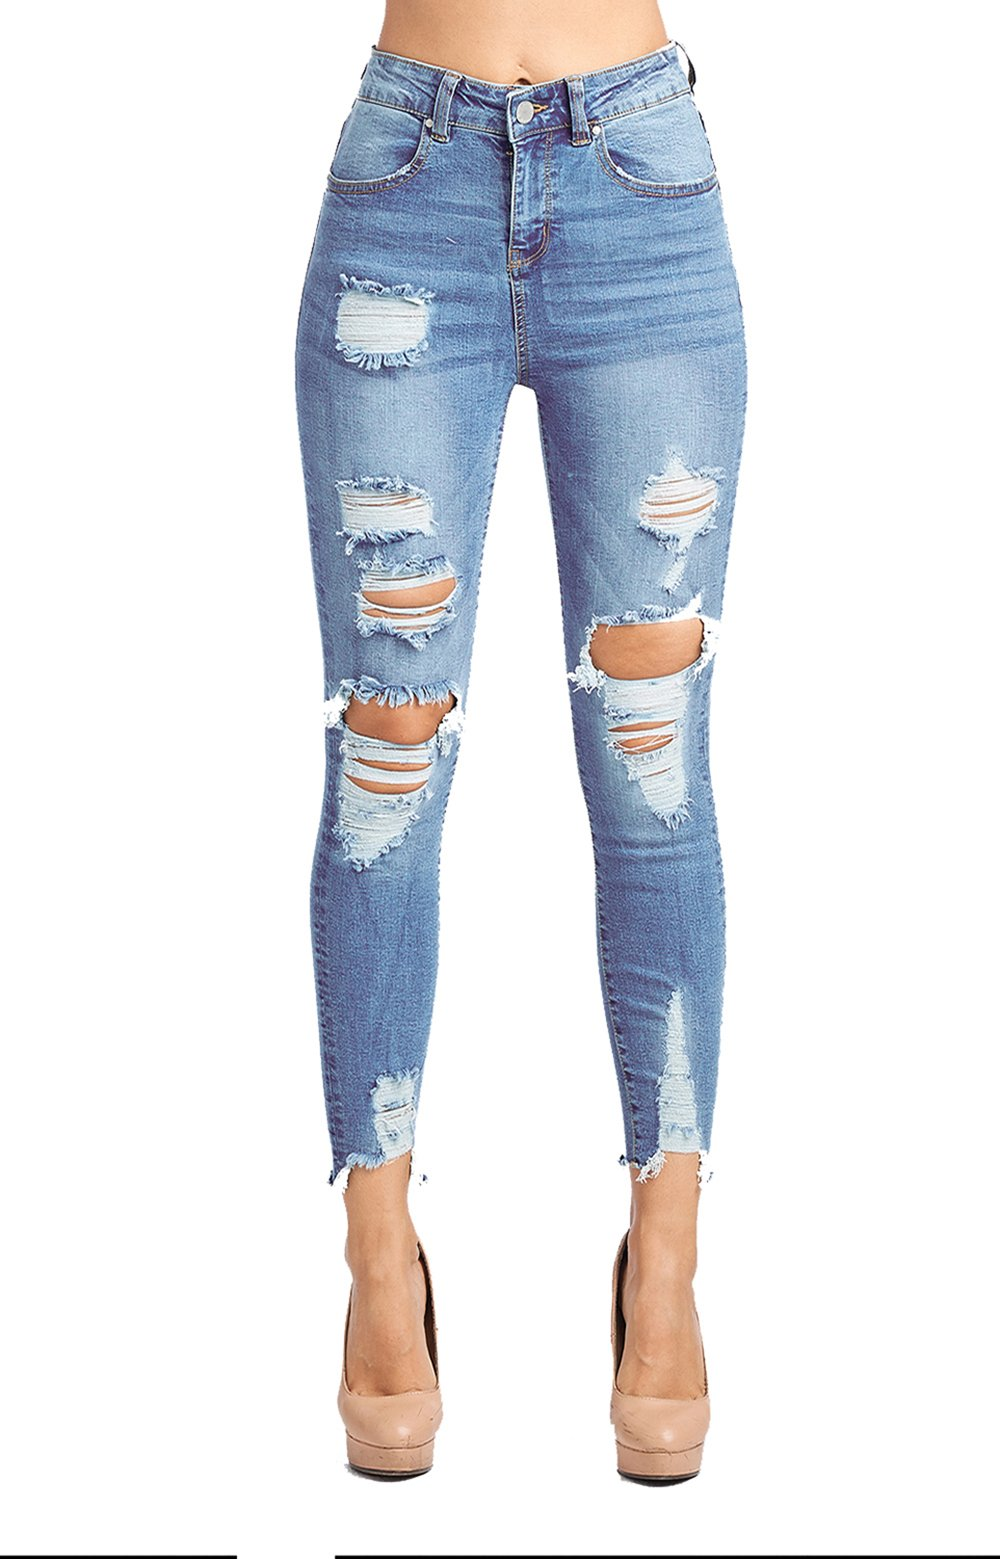 Blue Age Womens Destroyed Stretch Skinny Jeans (JP1078A_LT_11)